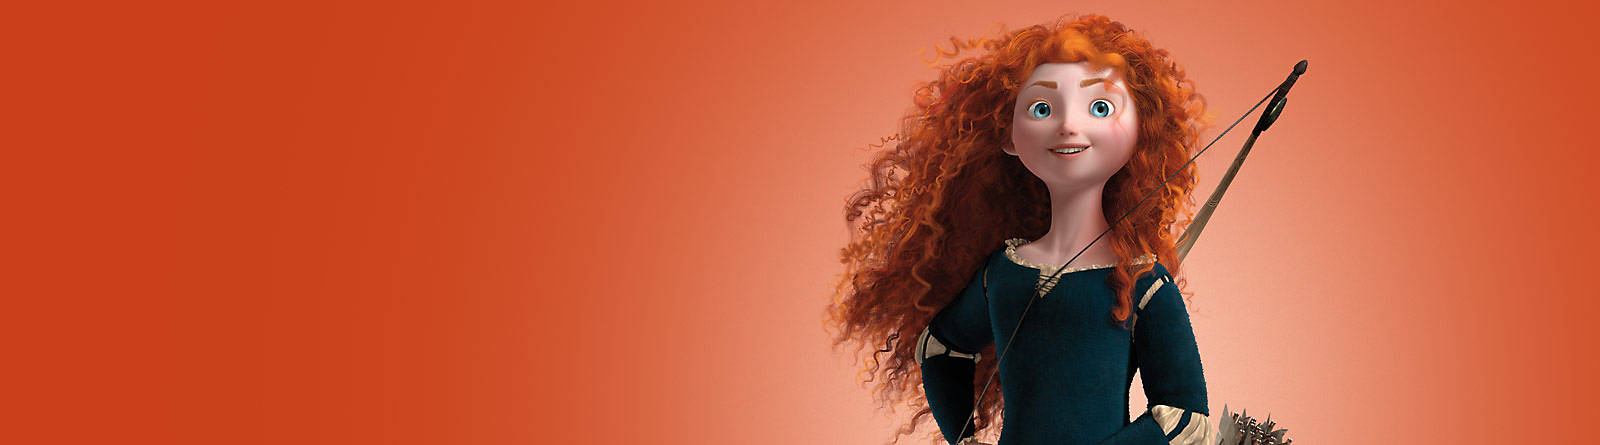 Merida Check out our range of Merida from Brave clothing, toys, accessories and more